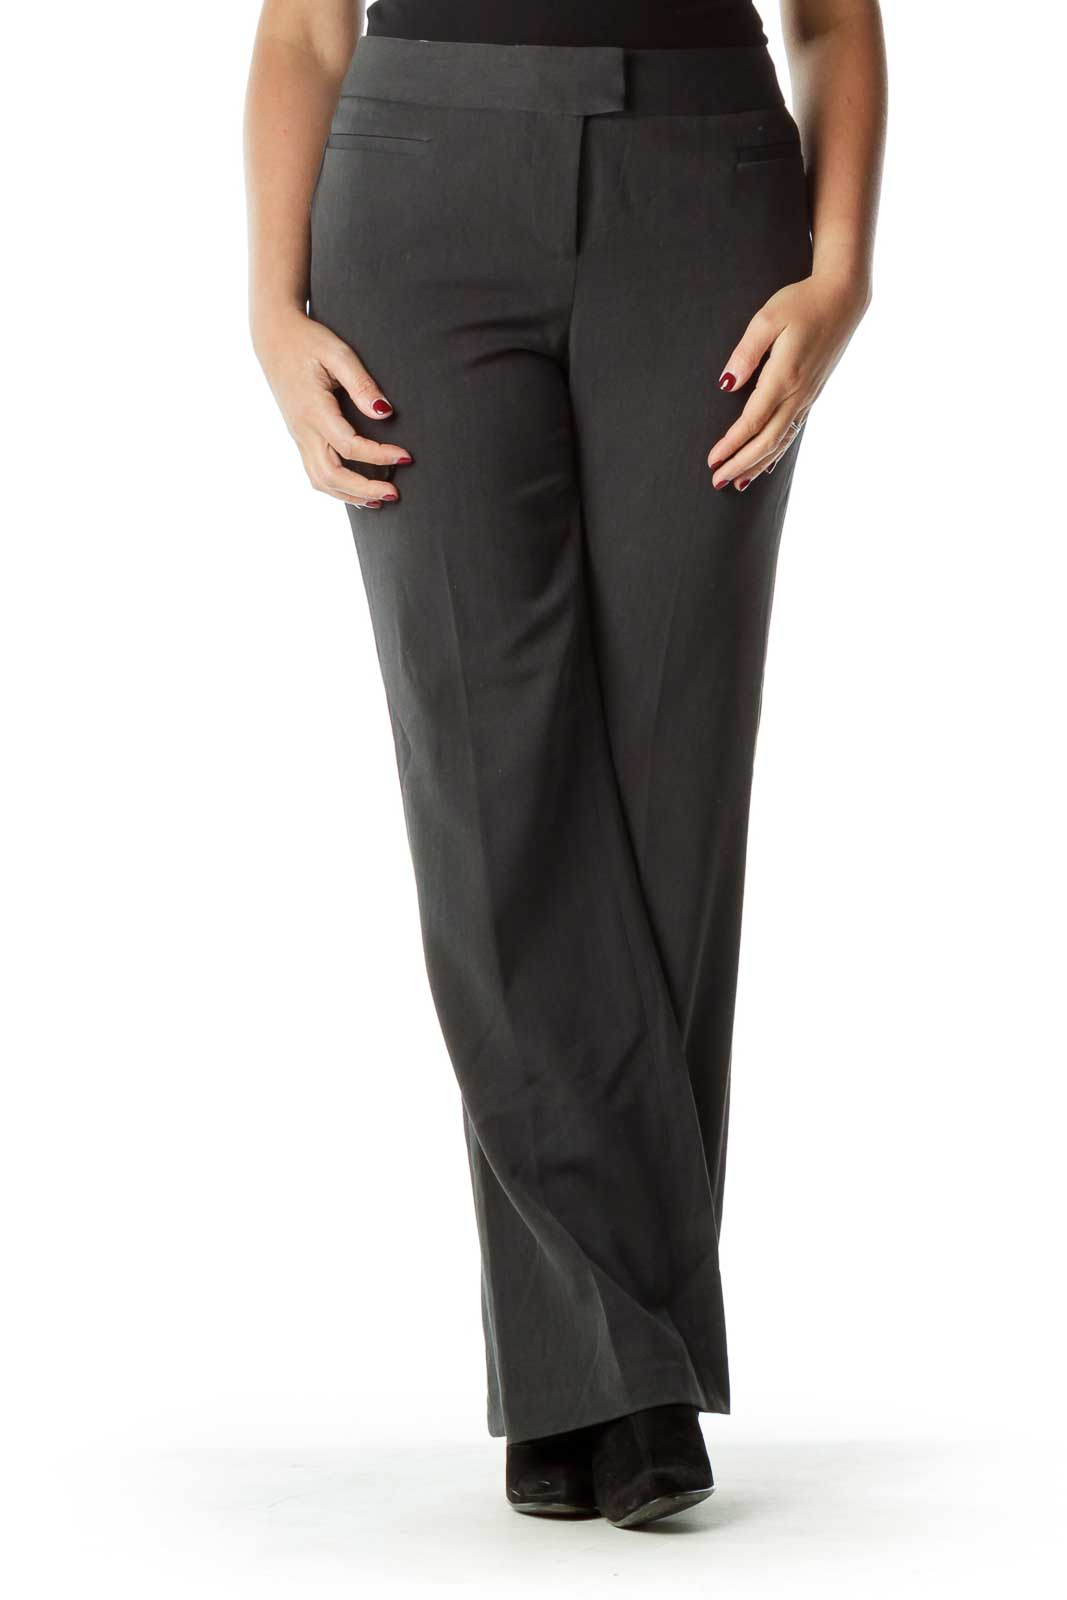 Gray Wide Leg Work Pant Front